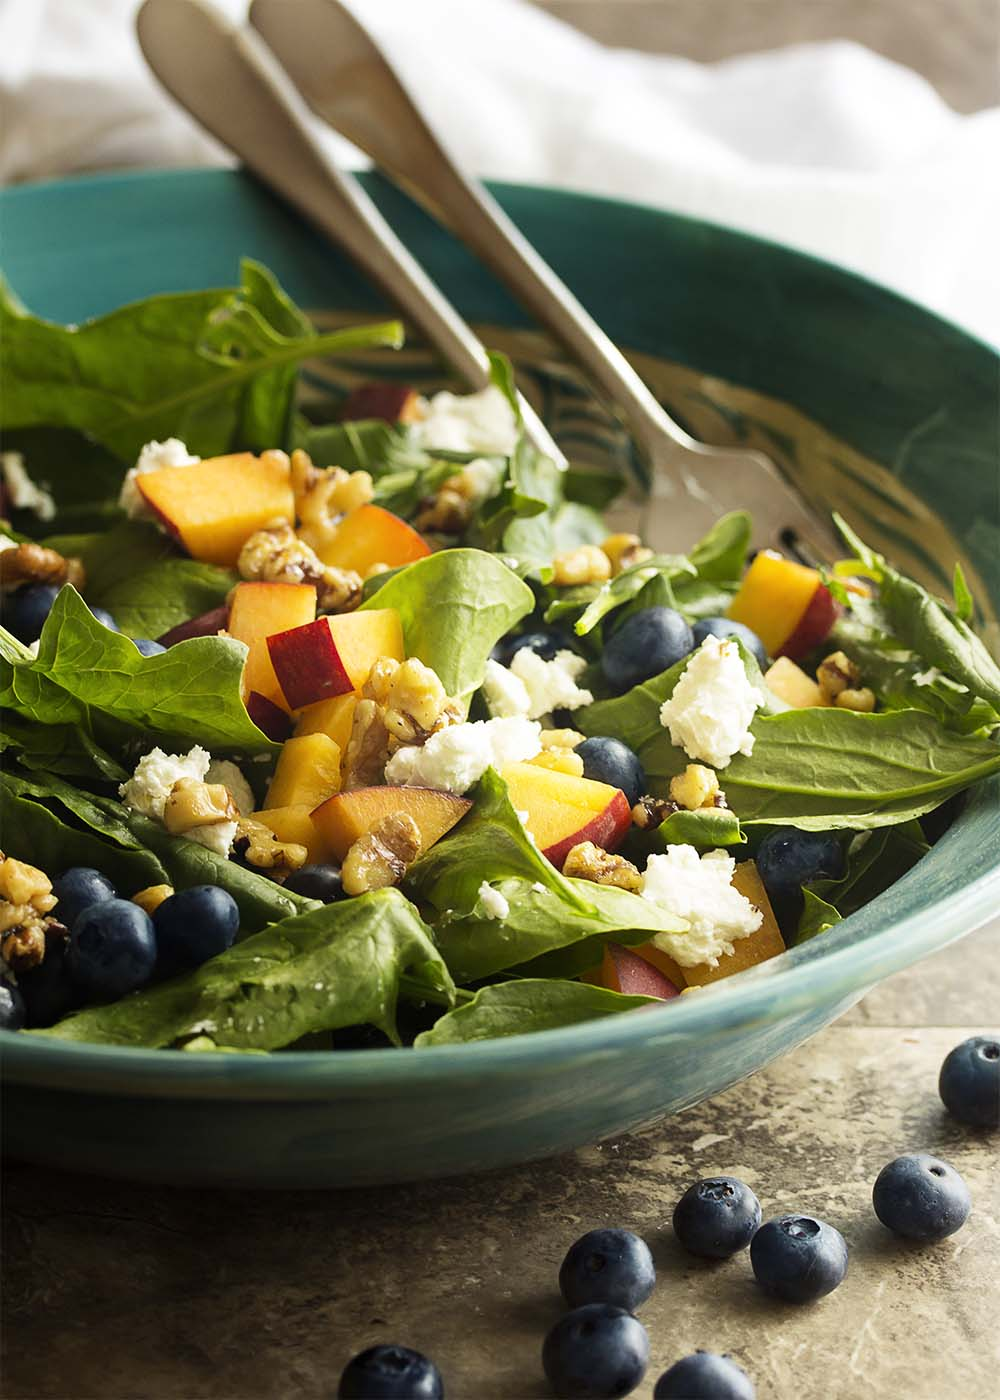 Punch up your spinach salad with seasonal summer fruits, creamy cheese, and glazed walnuts in this peach and blueberry spinach salad. | justalittlebitofbacon.com